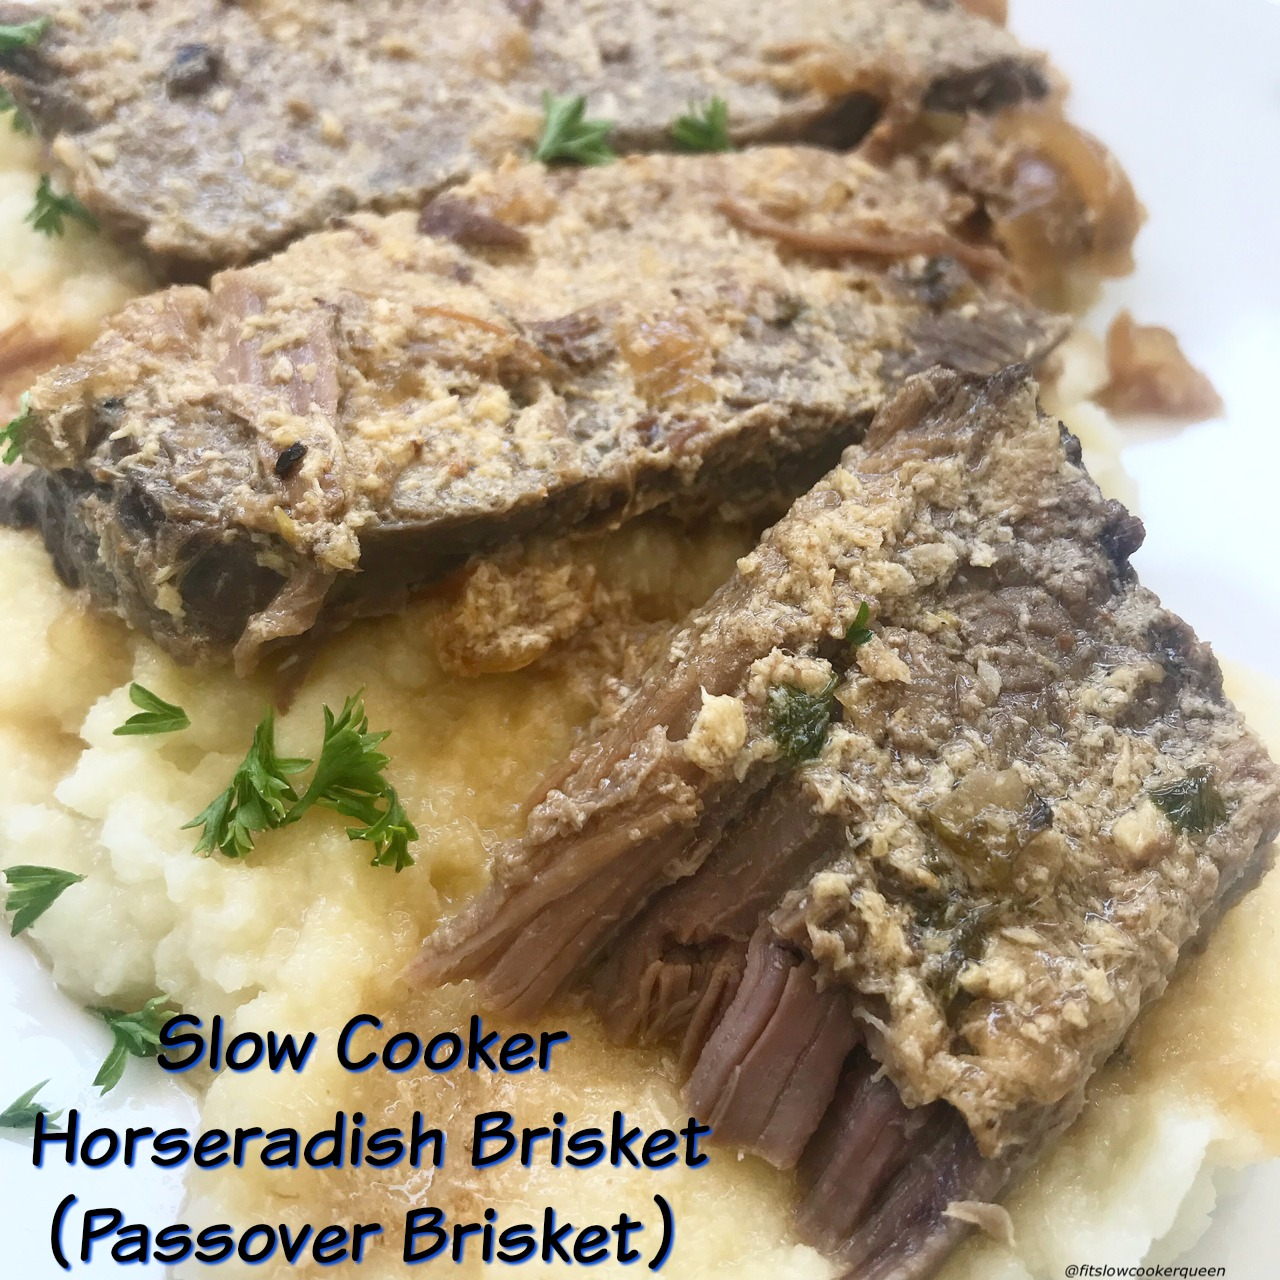 Horseradish covers brisket then slow cooks with onions in this simple yet flavorful slow cooker recipe that's perfect for your next Passover seder.